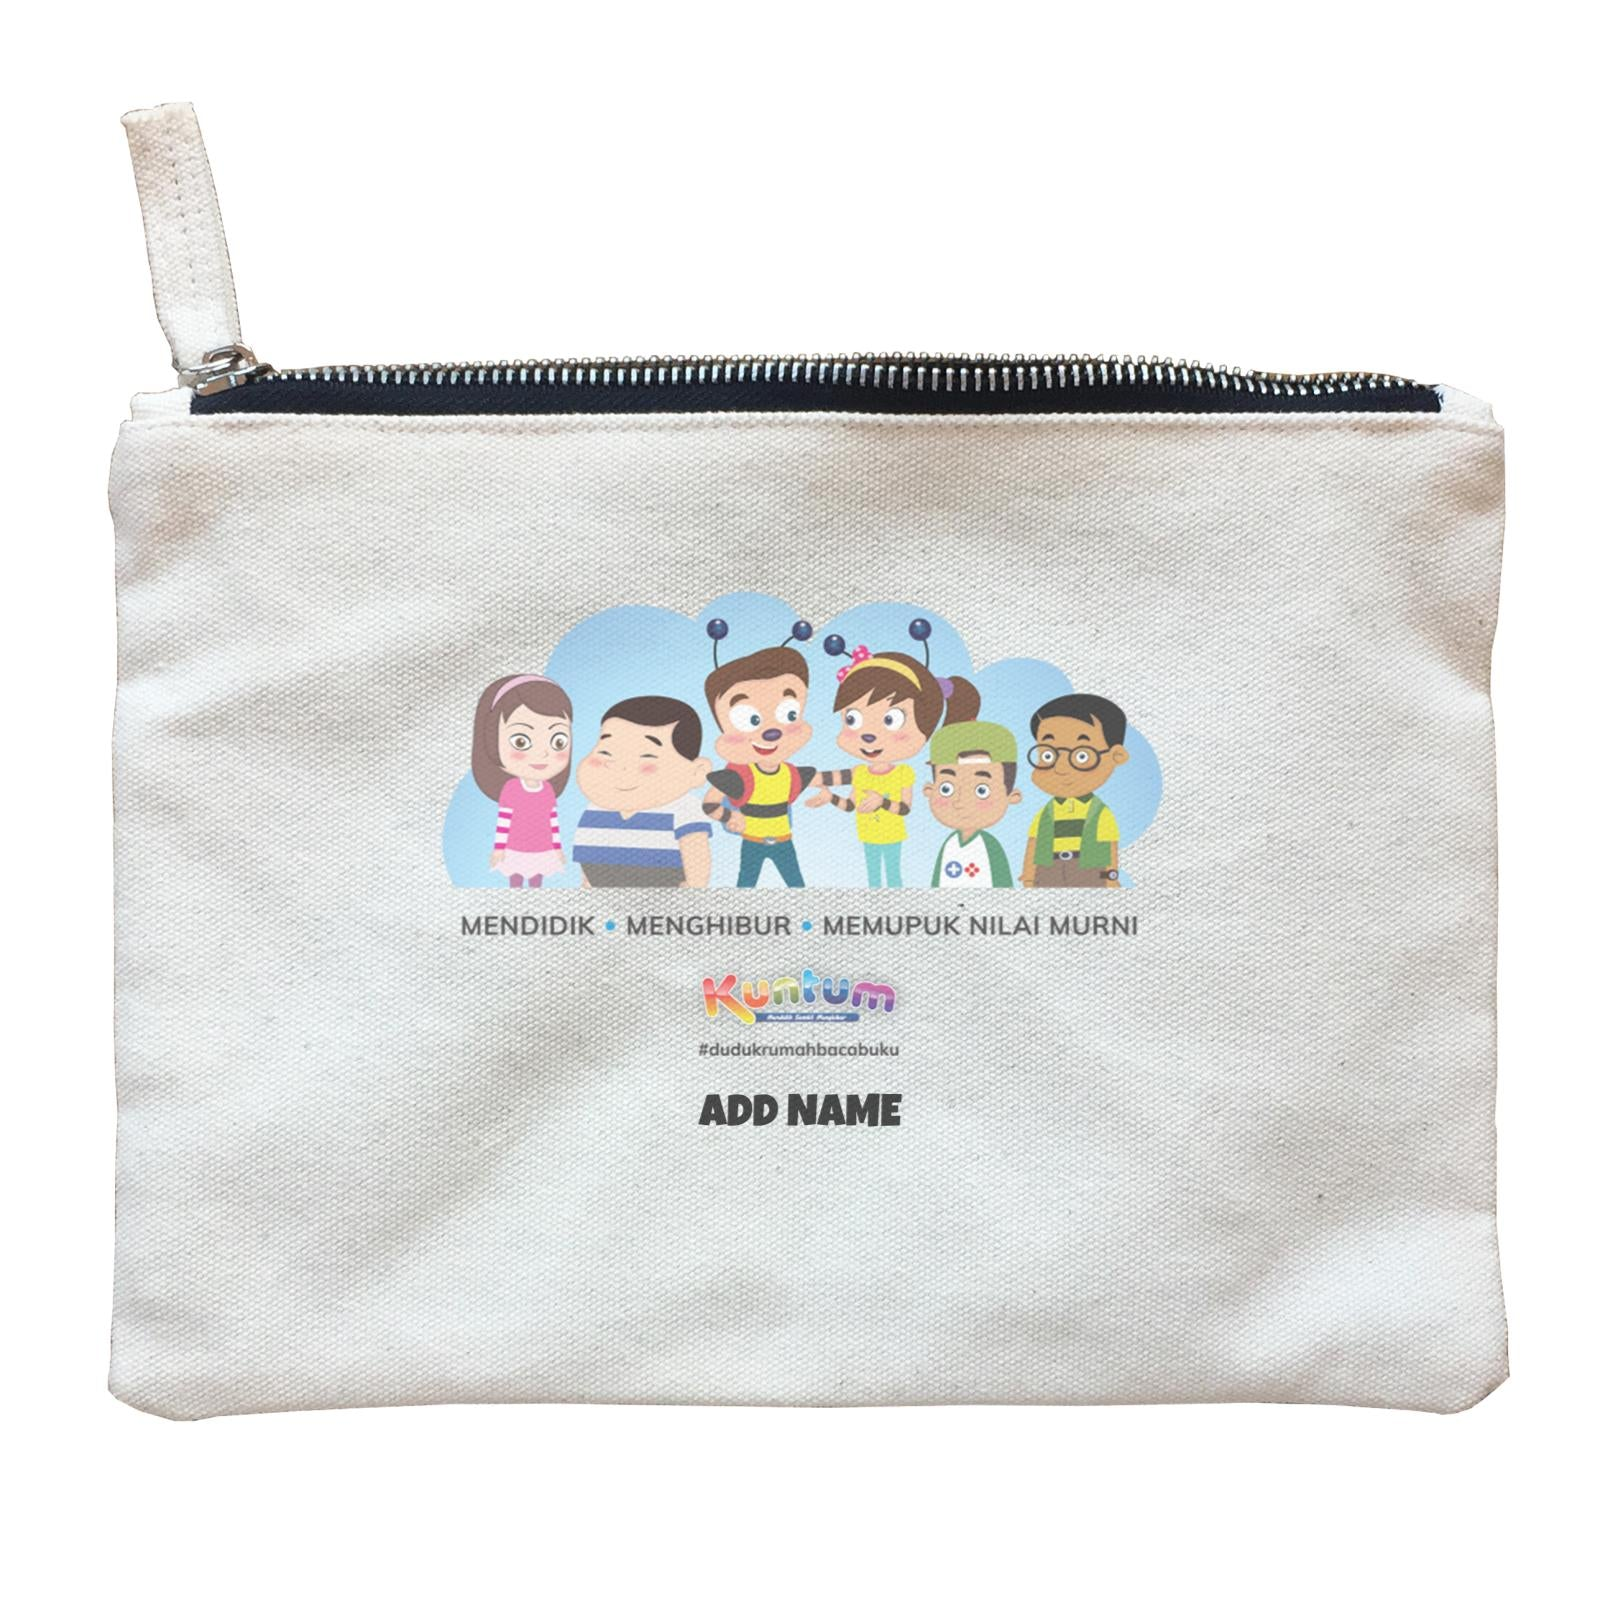 Kuntum & Friends Zipper Pouch